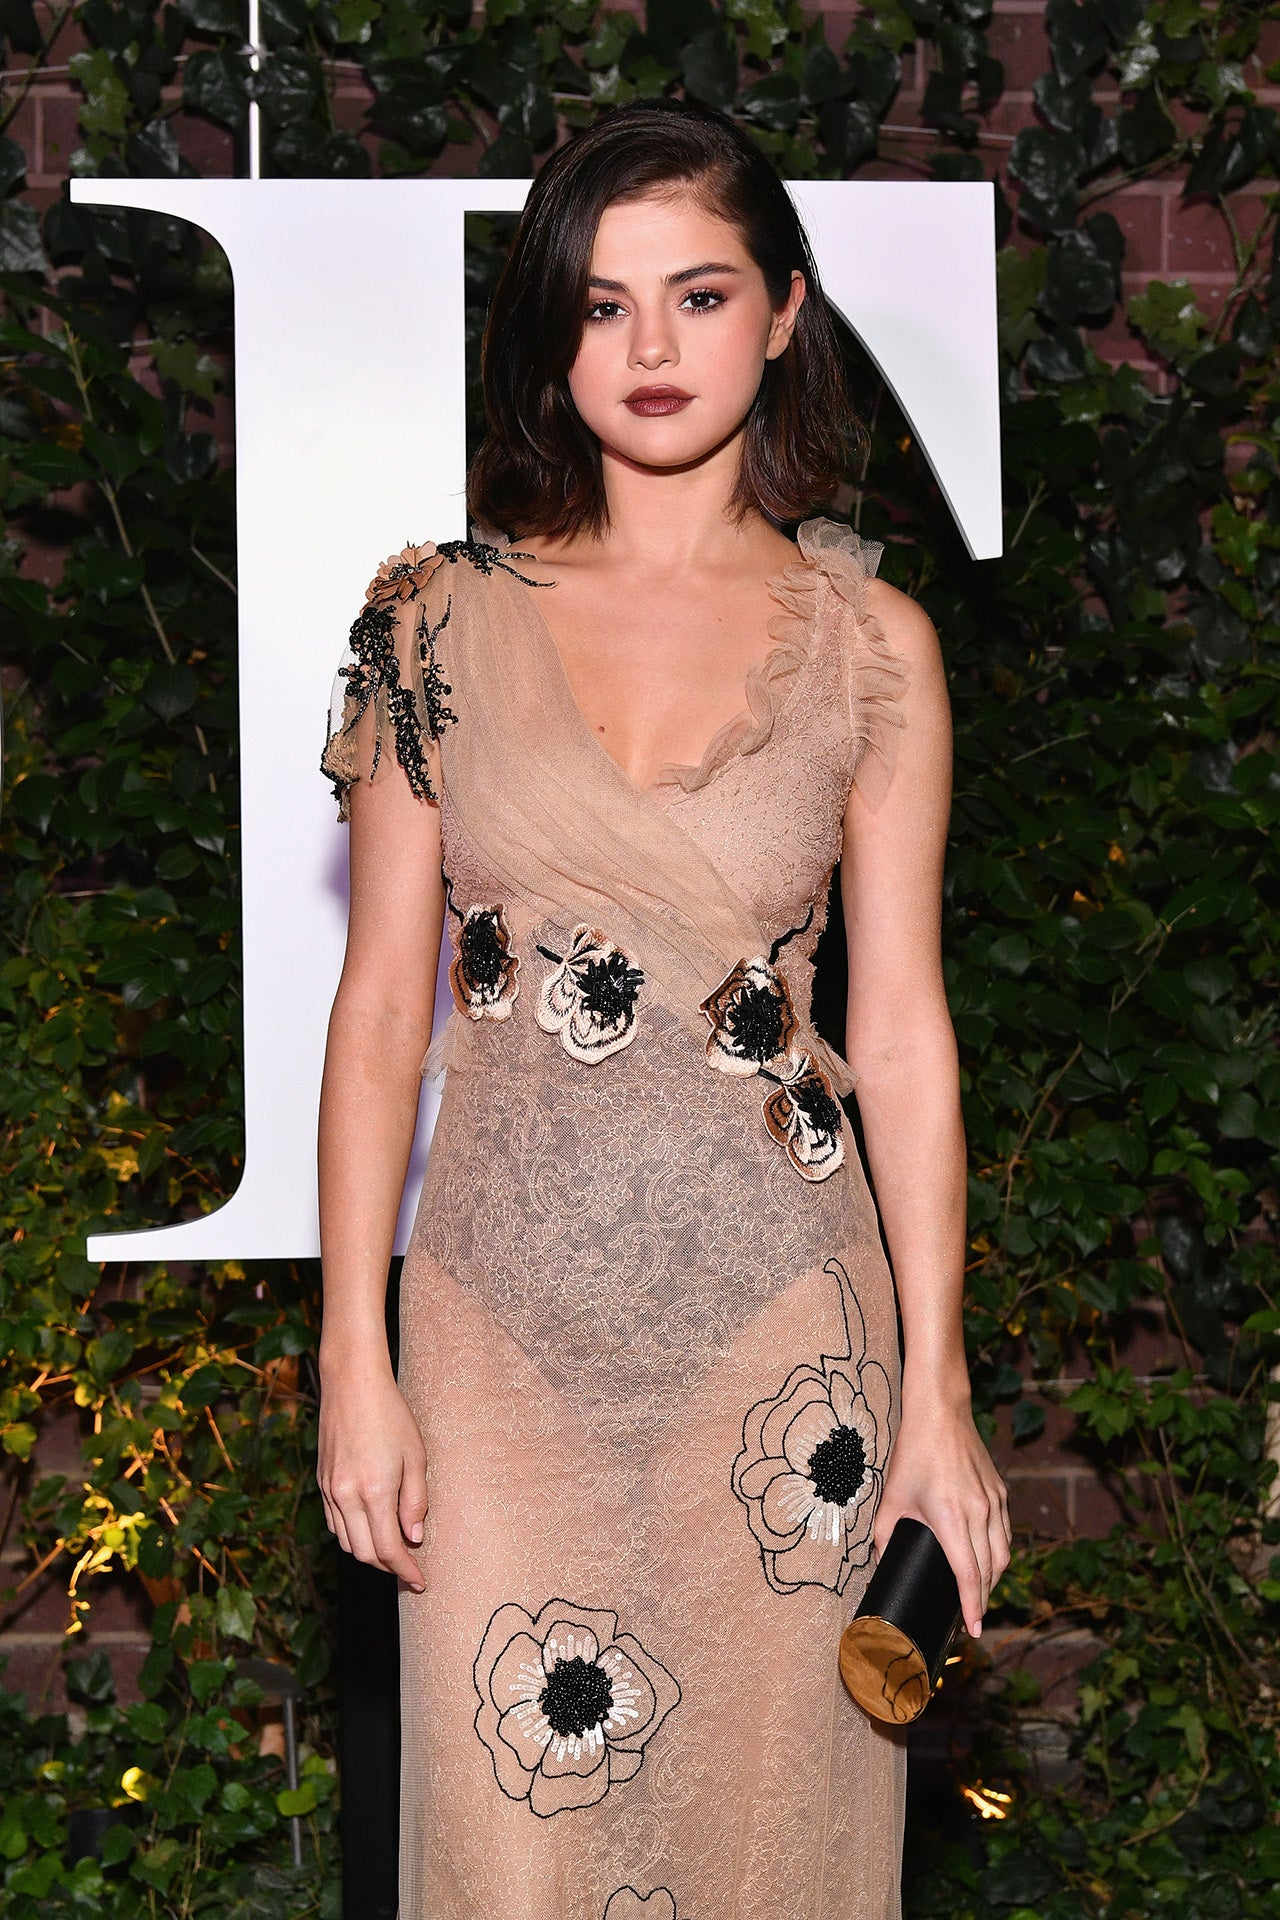 Selena Gomez Stuns in Sheer Gown After The Weeknd Photographs Her ...